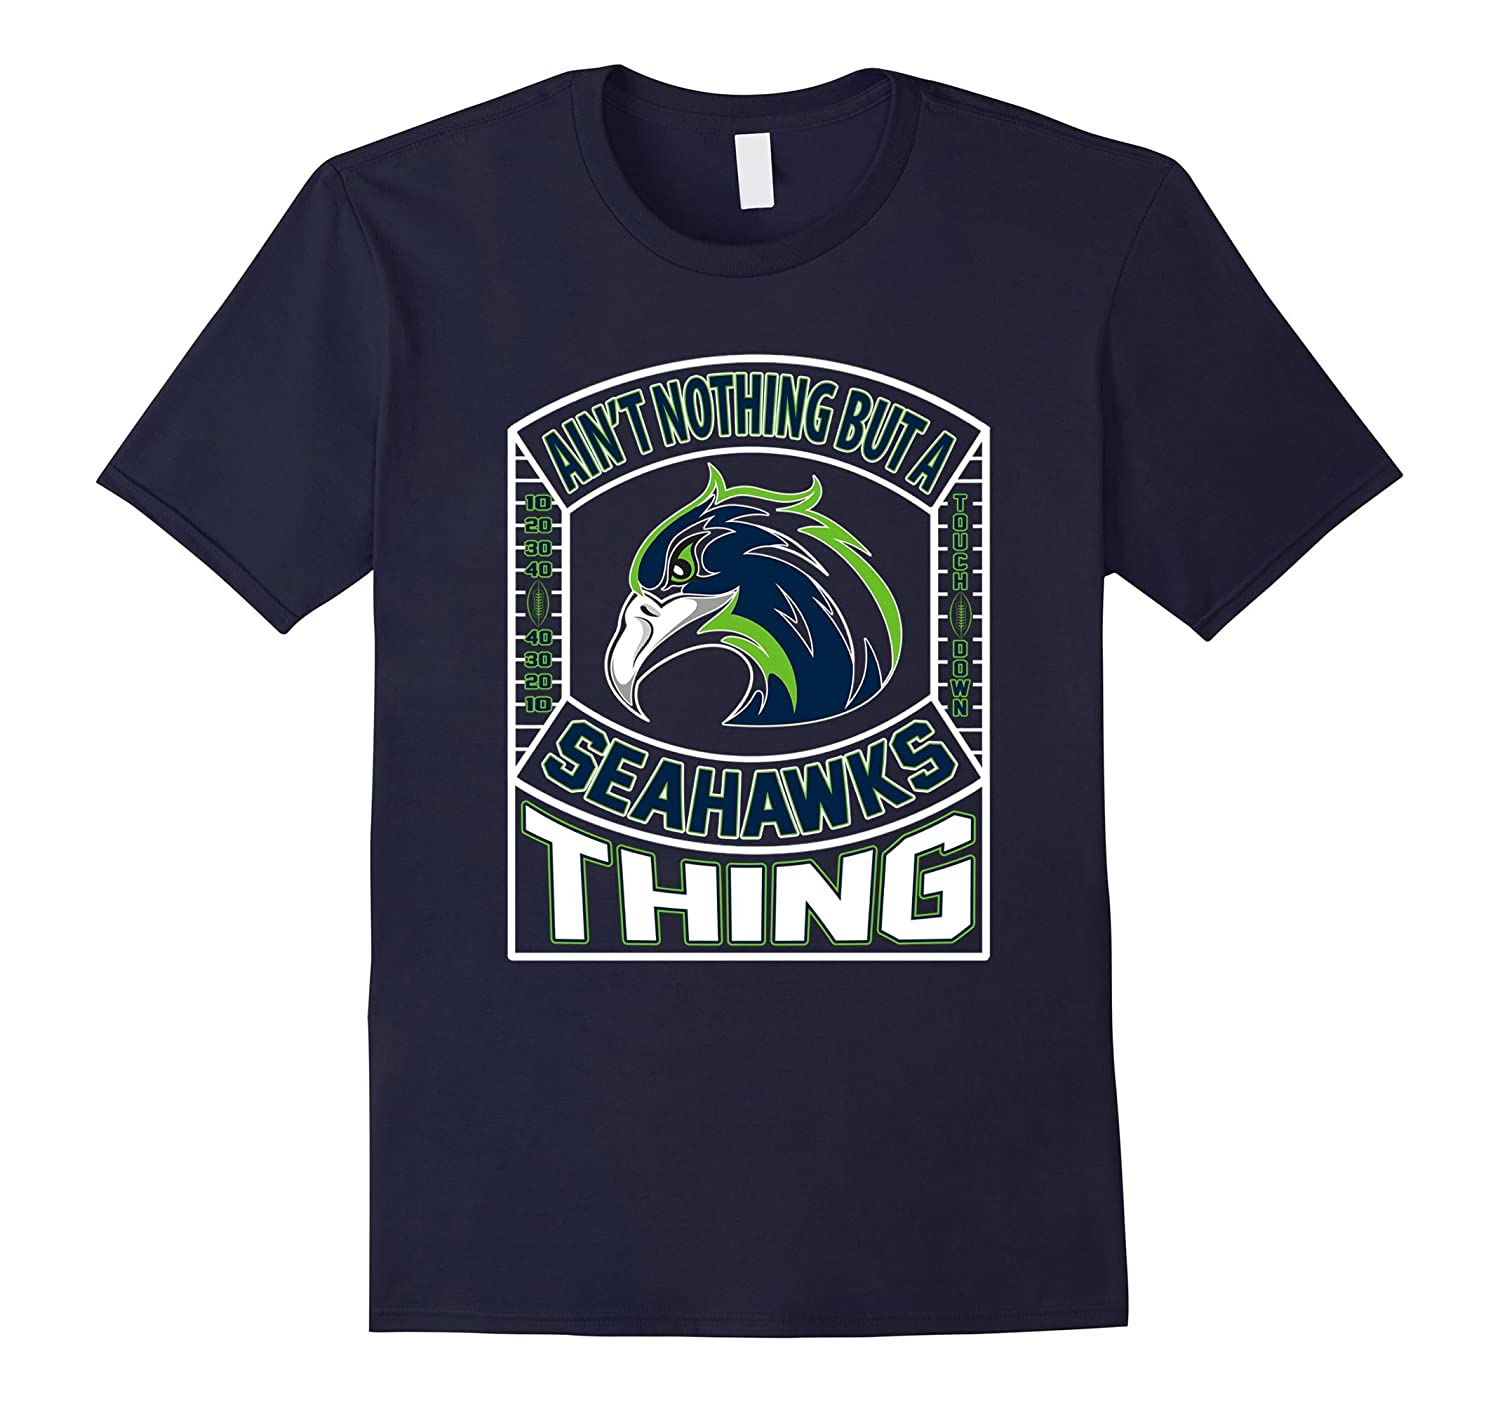 Apparel Men Women Sports Gear Football Tshirt Seahawks-Art